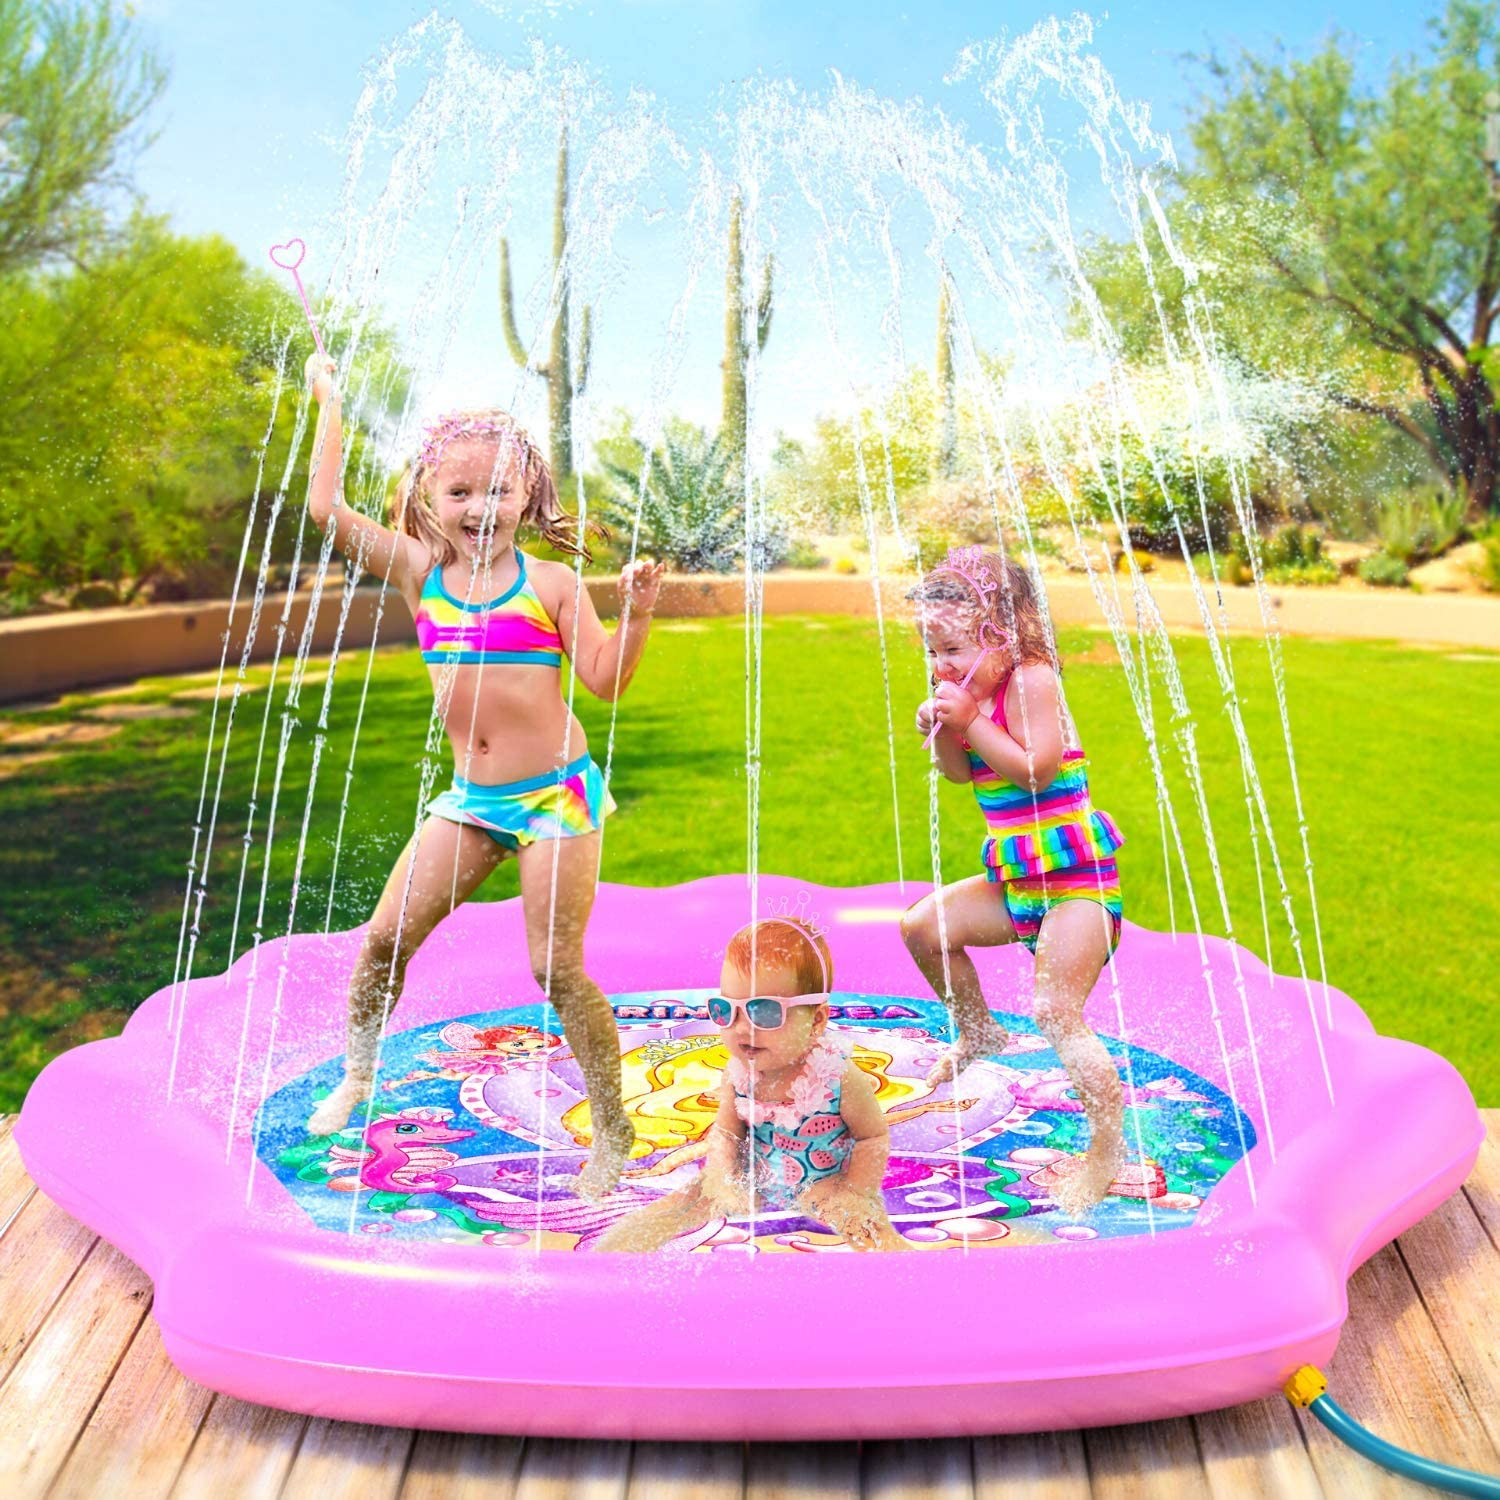 """PRINCESSEA Splash Pad for Girls, XL 70"""" Outdoor Mermaid Children's Water Pad, Wading Pool & Sprinkler for Kids - Inflatable Kiddie Swimming Pool, Water Toy for Babies and Toddlers 12 Months & Up"""